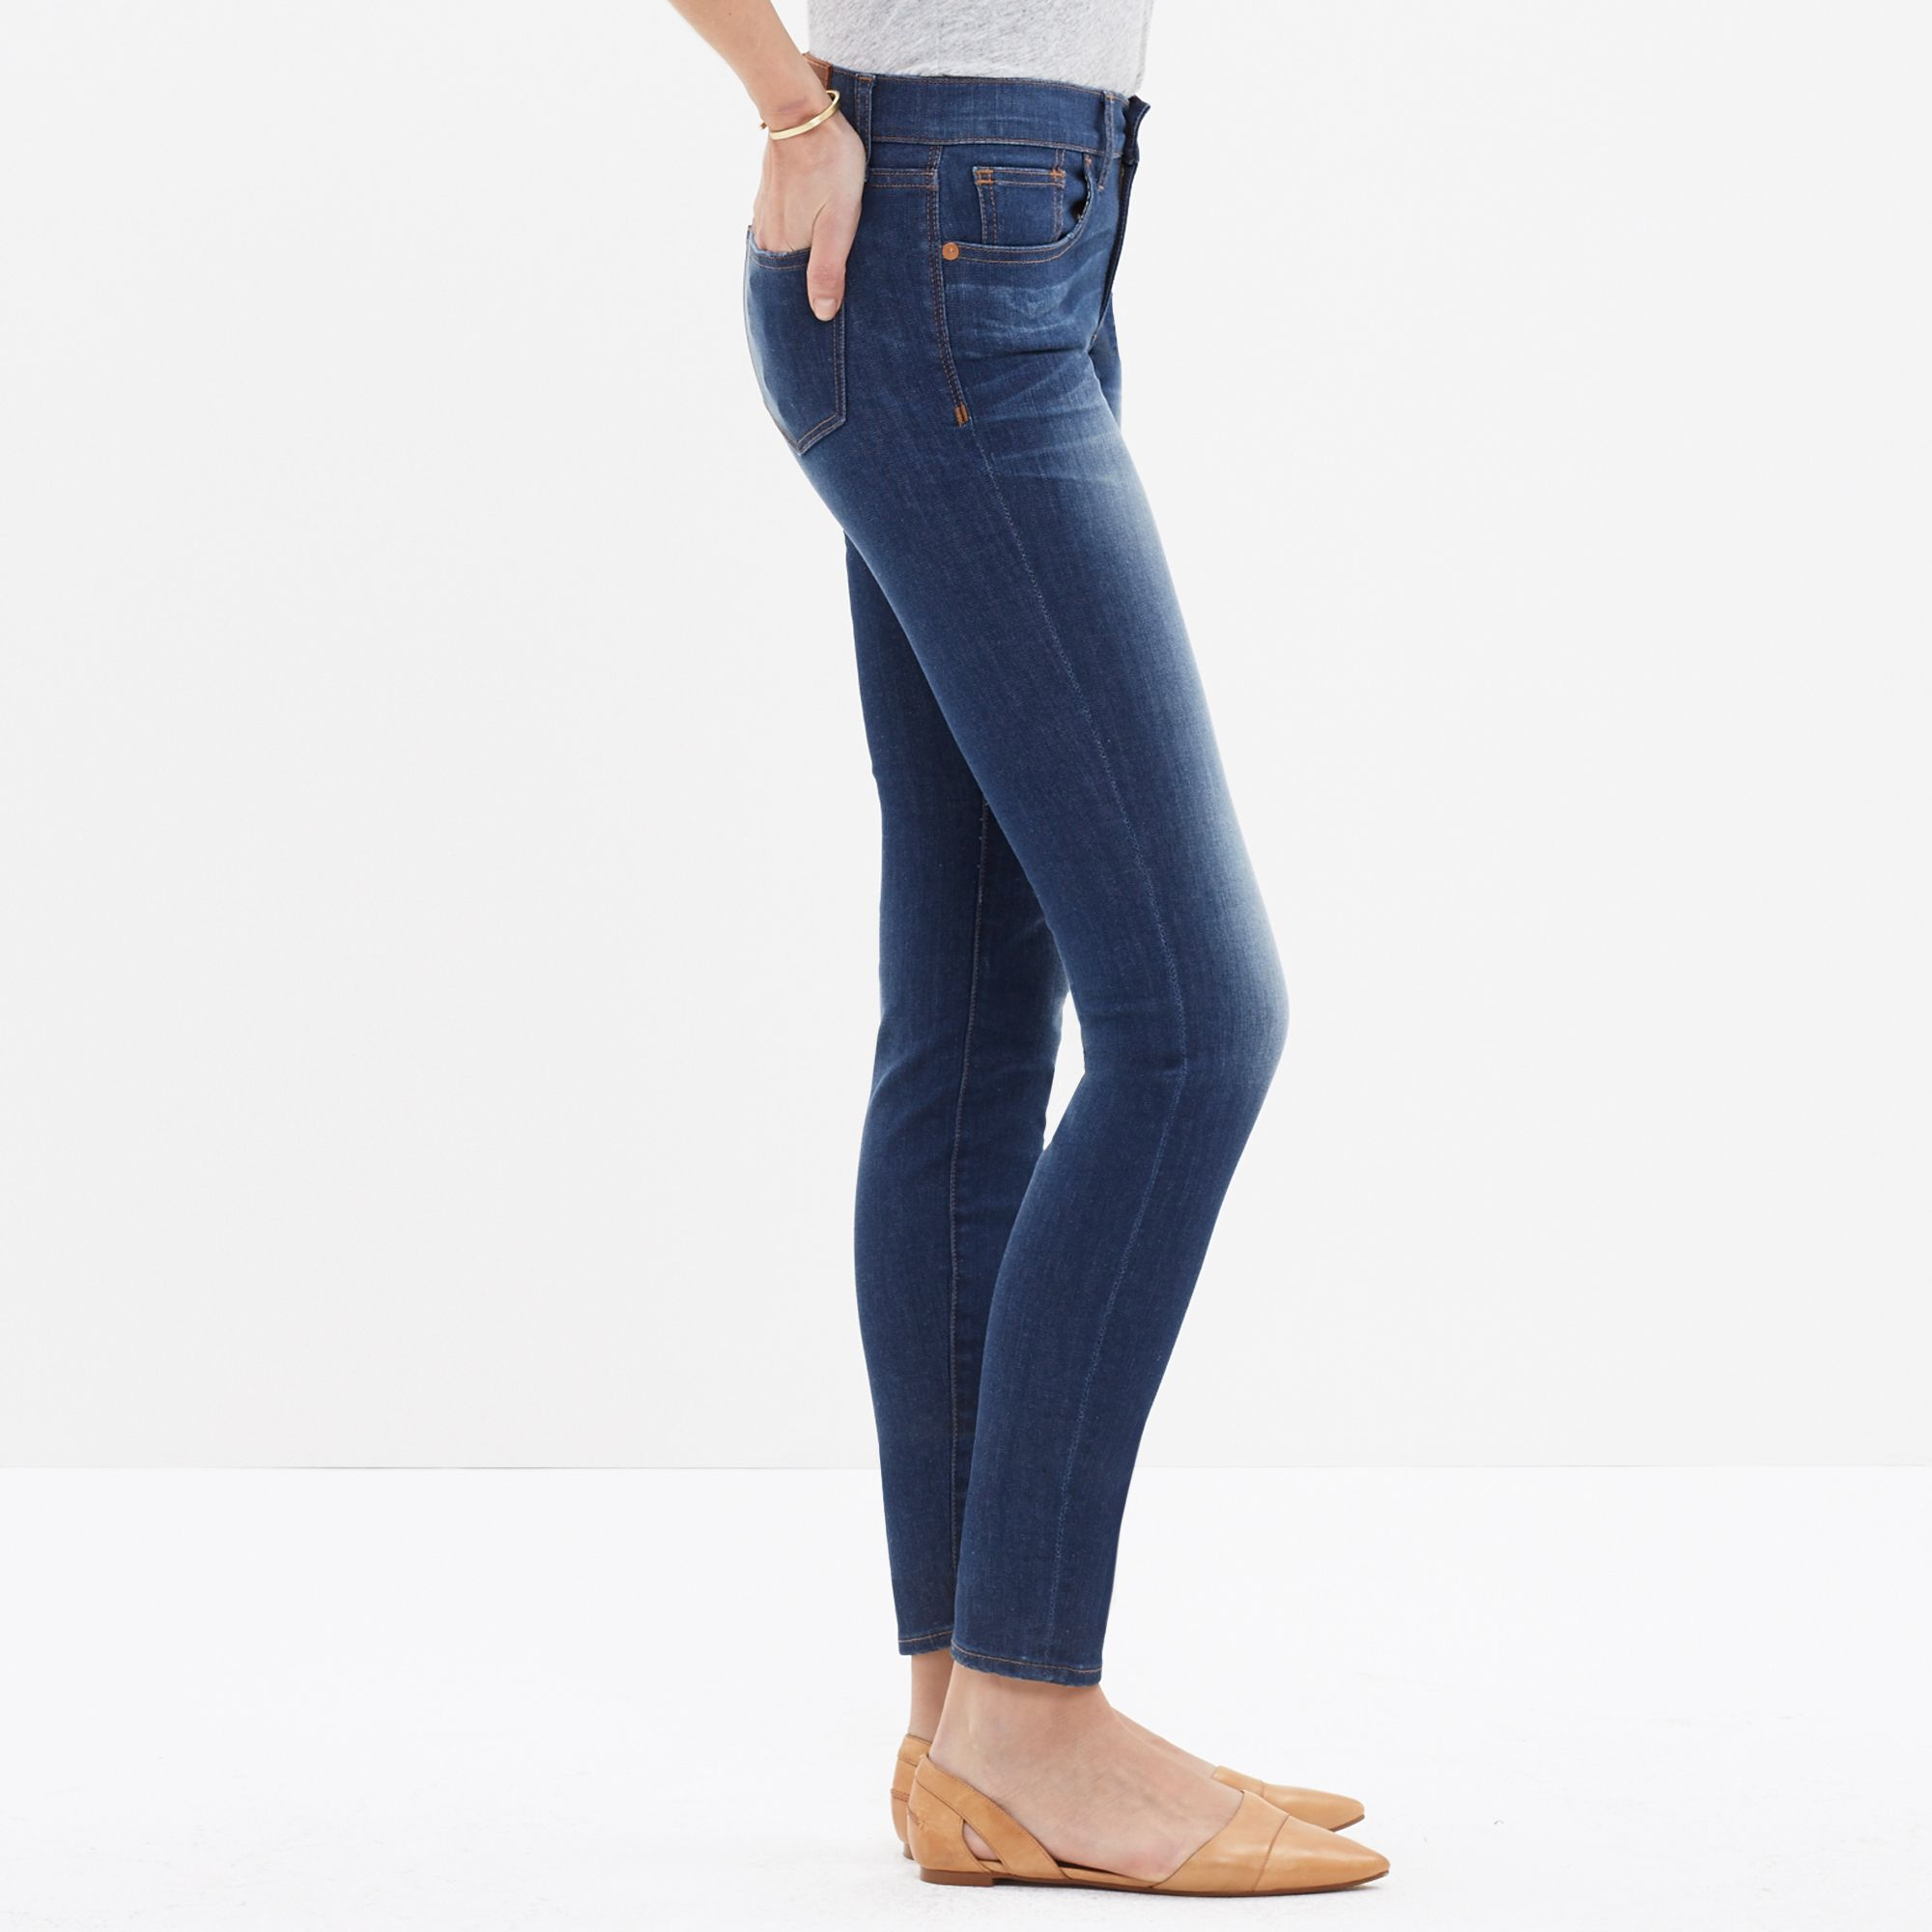 Madewell Skinny Skinny Crop Jeans In Chilton Wash in Blue | Lyst